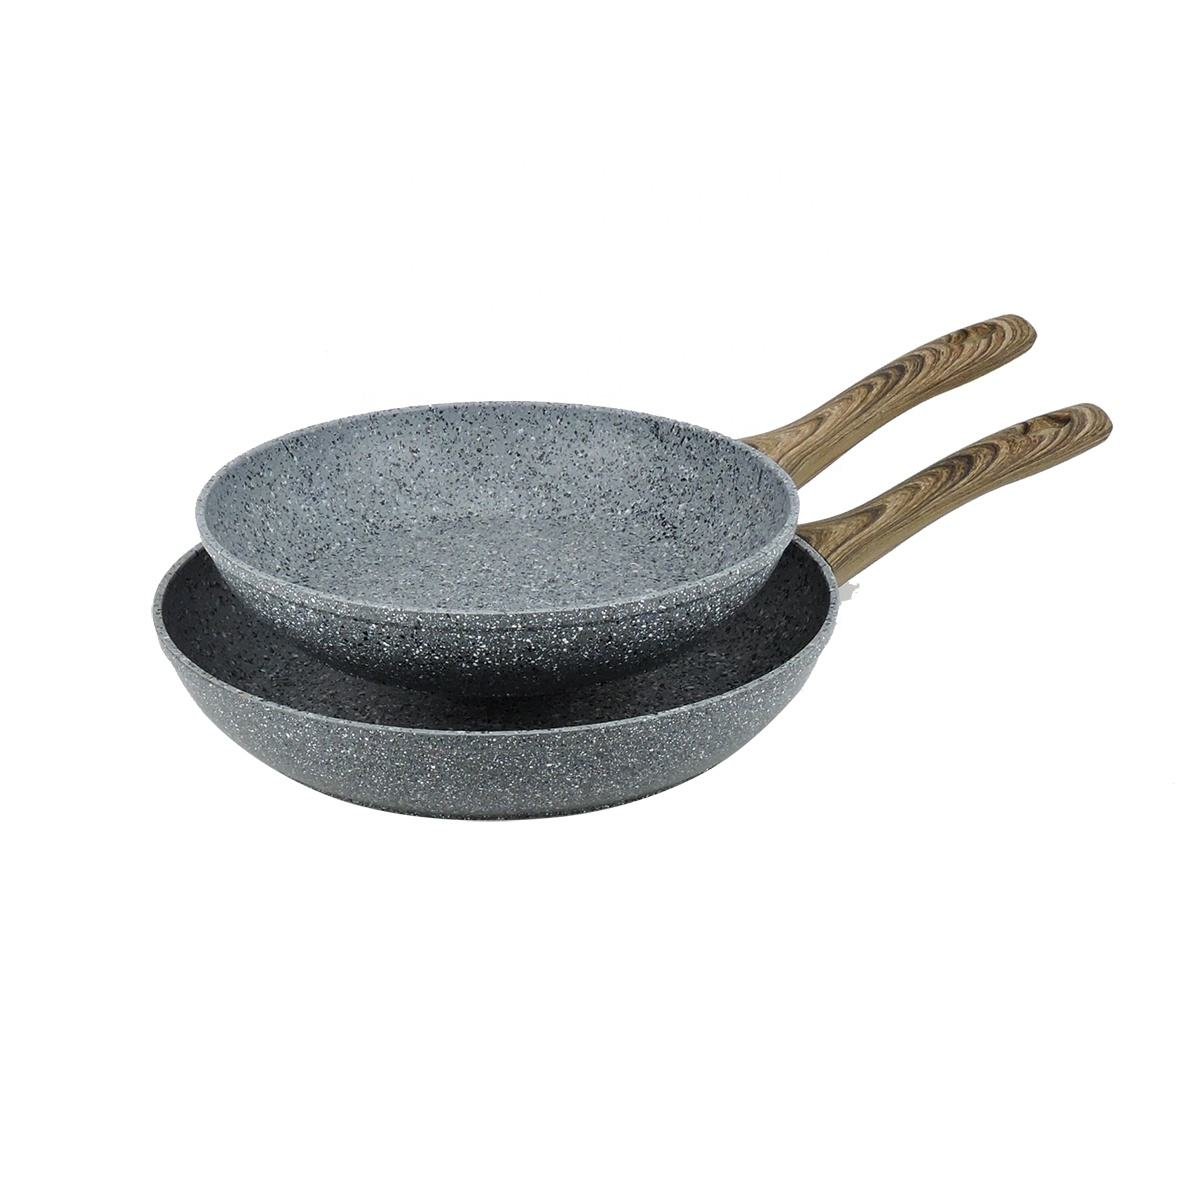 Forged Fry Pan New Arrivals Granite Forged Aluminum Frying Pan Non-stick Granite Pans Sets With Wooden Handle